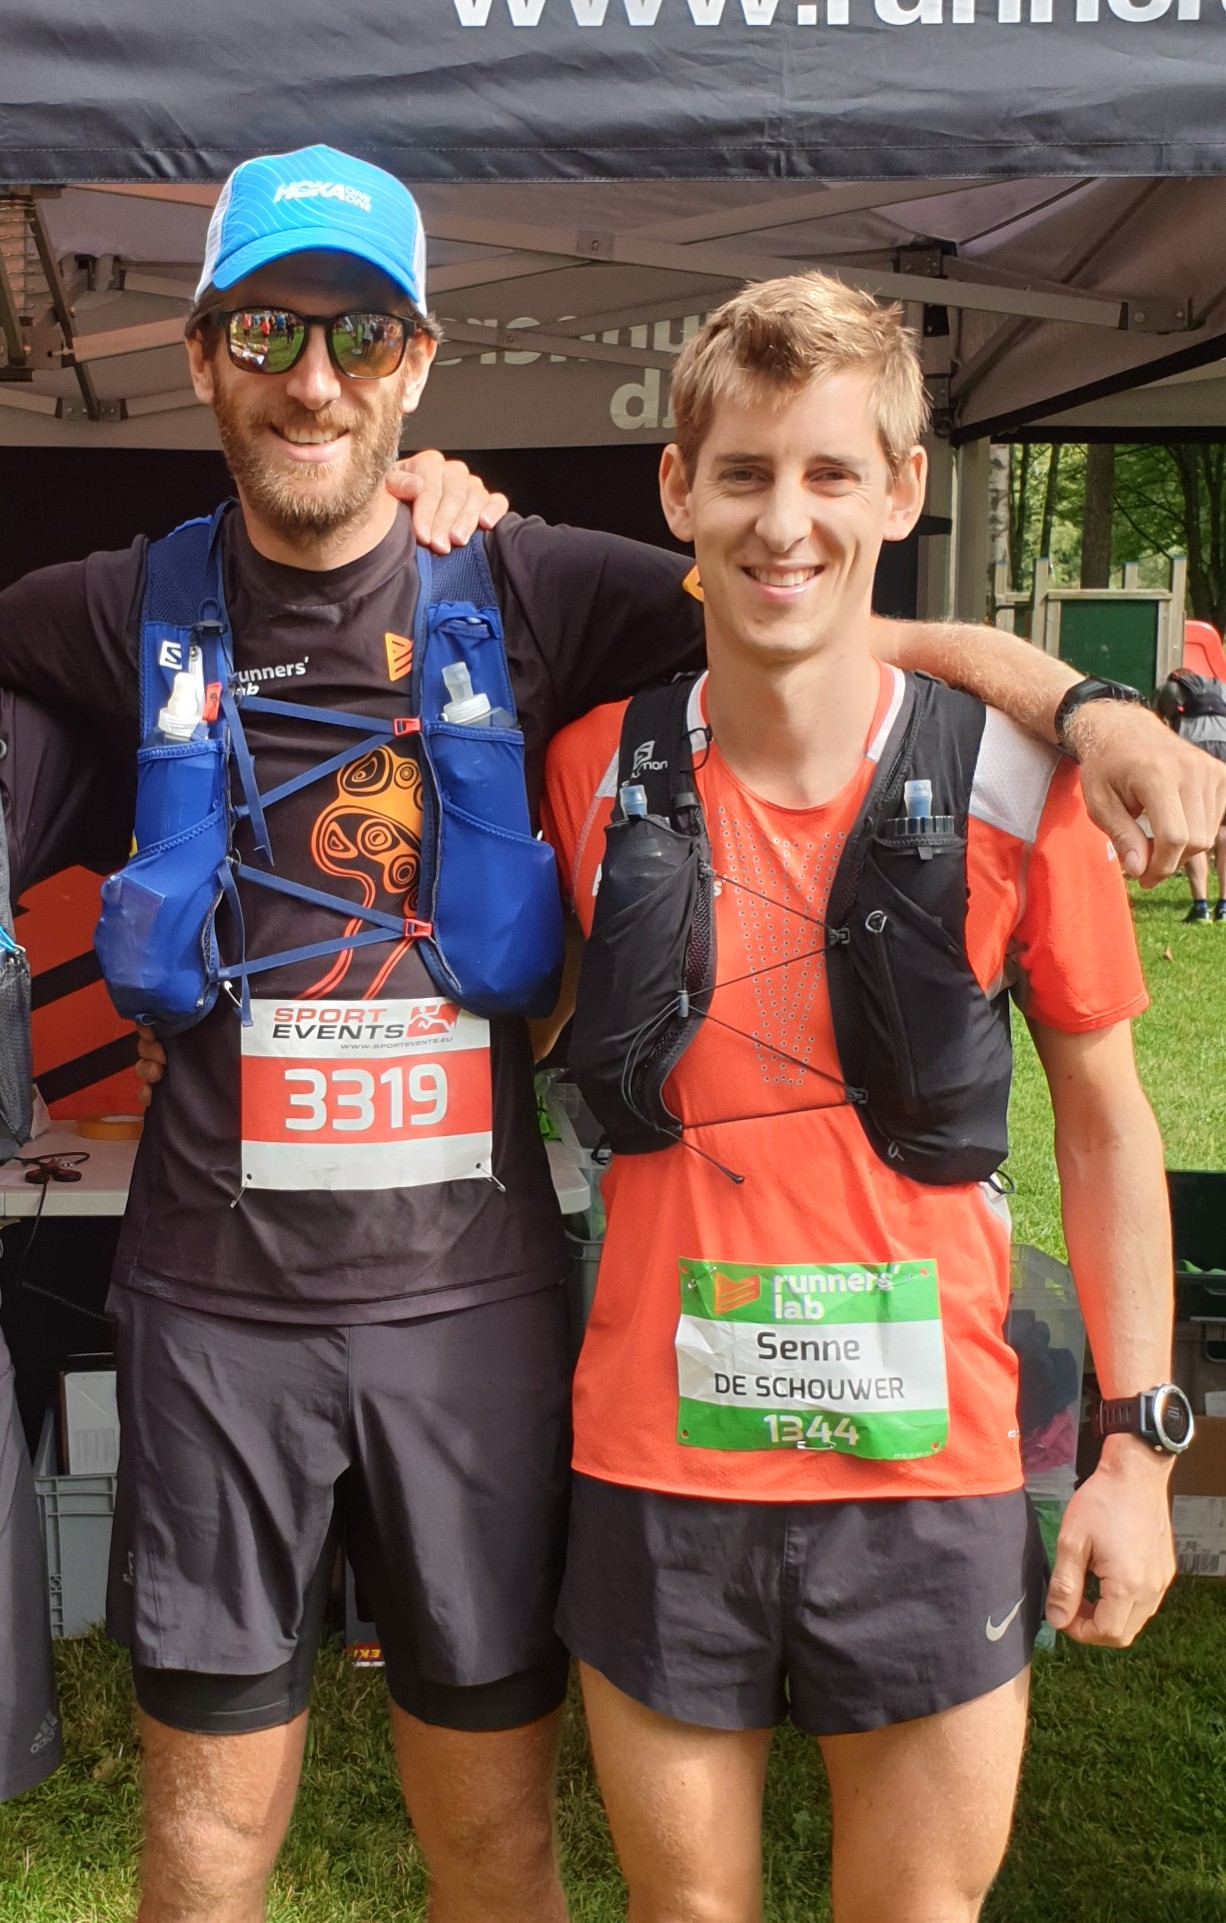 Team Runners' lab run Transalpine run 2019 - Nick en Senne